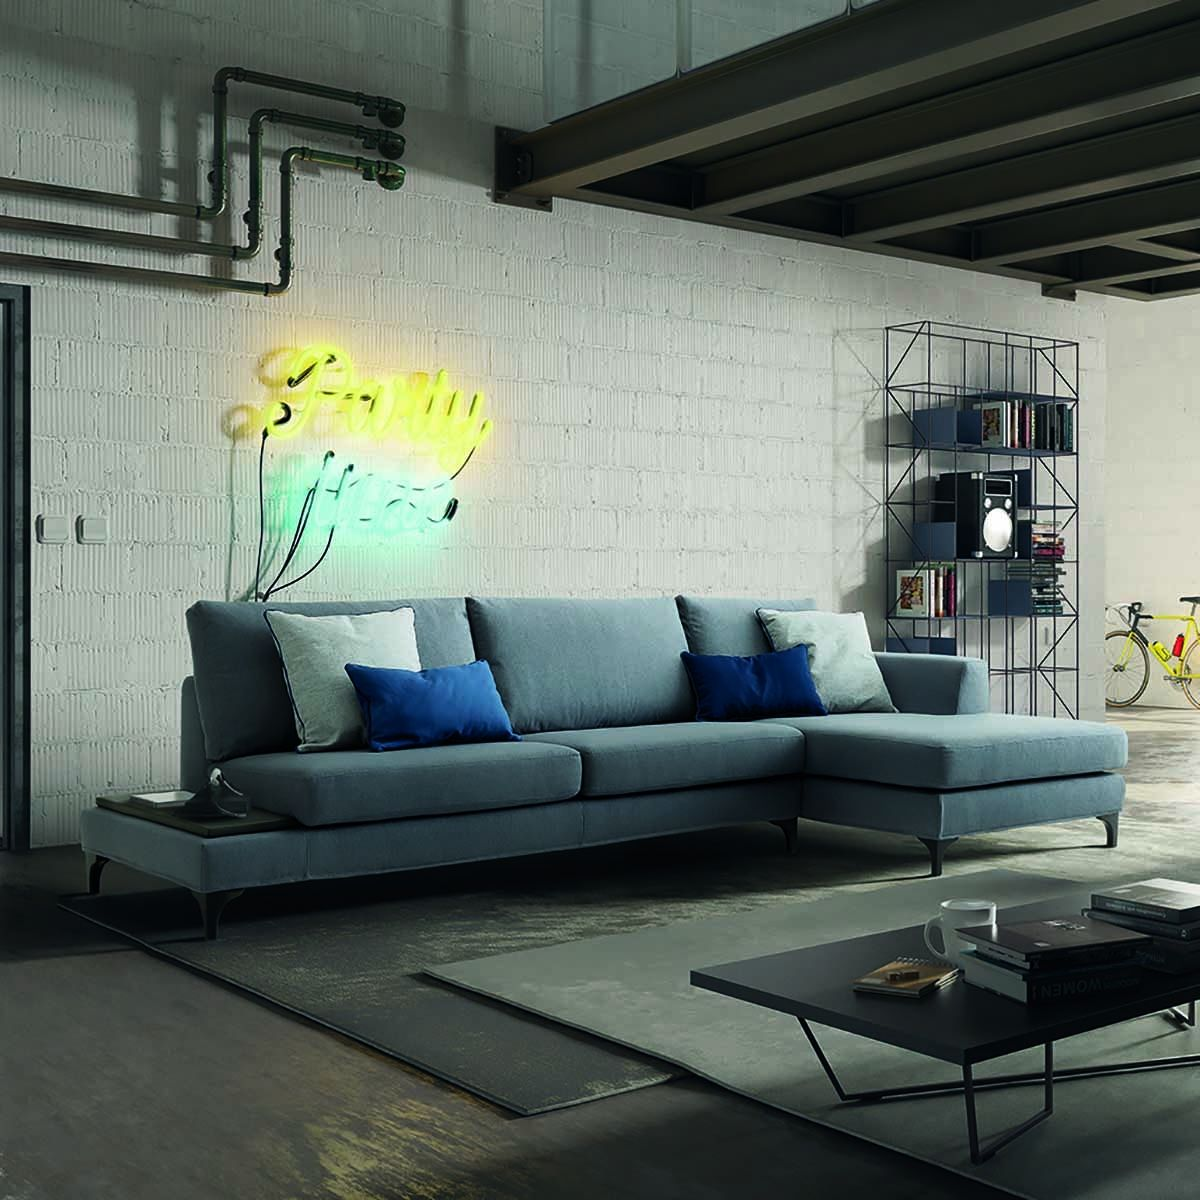 Divano con chaiselongue Avatar - casarredostudio.it